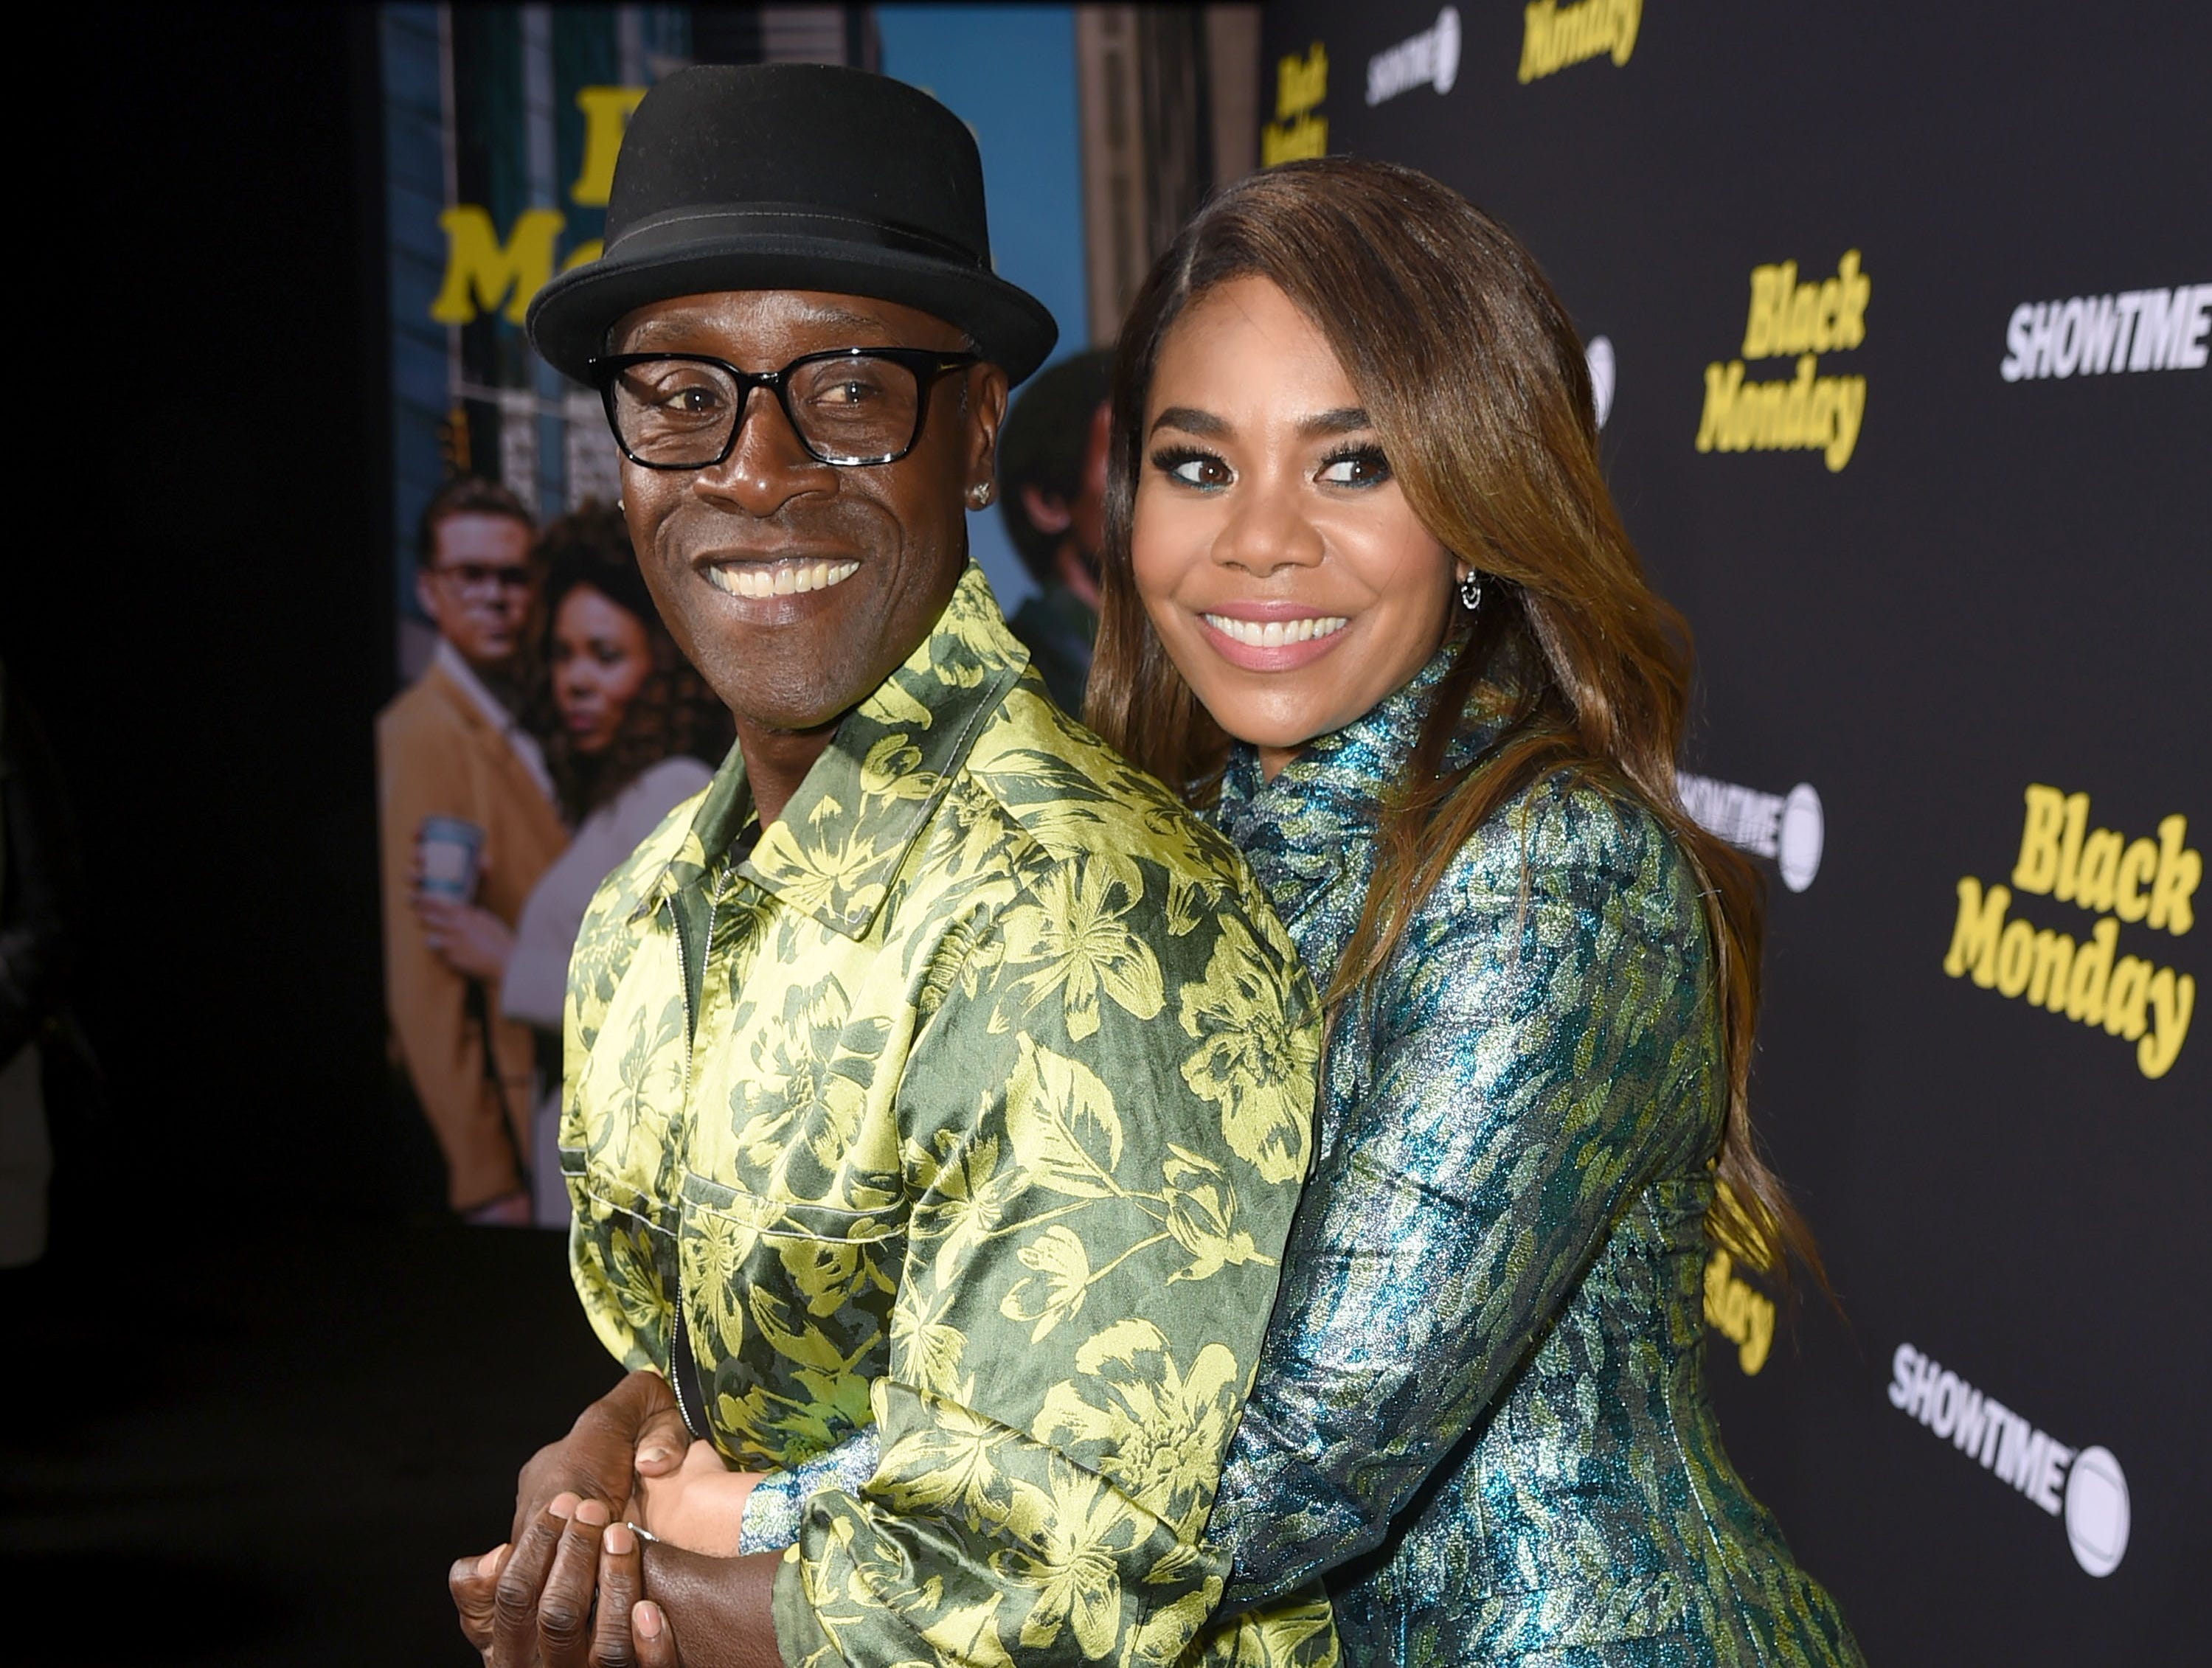 "LOS ANGELES, CALIFORNIA - JANUARY 14: Don Cheadle and Regina Hall arrive at the premiere of Showtime's ""Black Monday"" at The Theatre at Ace Hotel on January 14, 2019 in Los Angeles, California. (Photo by Kevin Winter/Getty Images) ORG XMIT: 775273619 ORIG FILE ID: 1094400498"